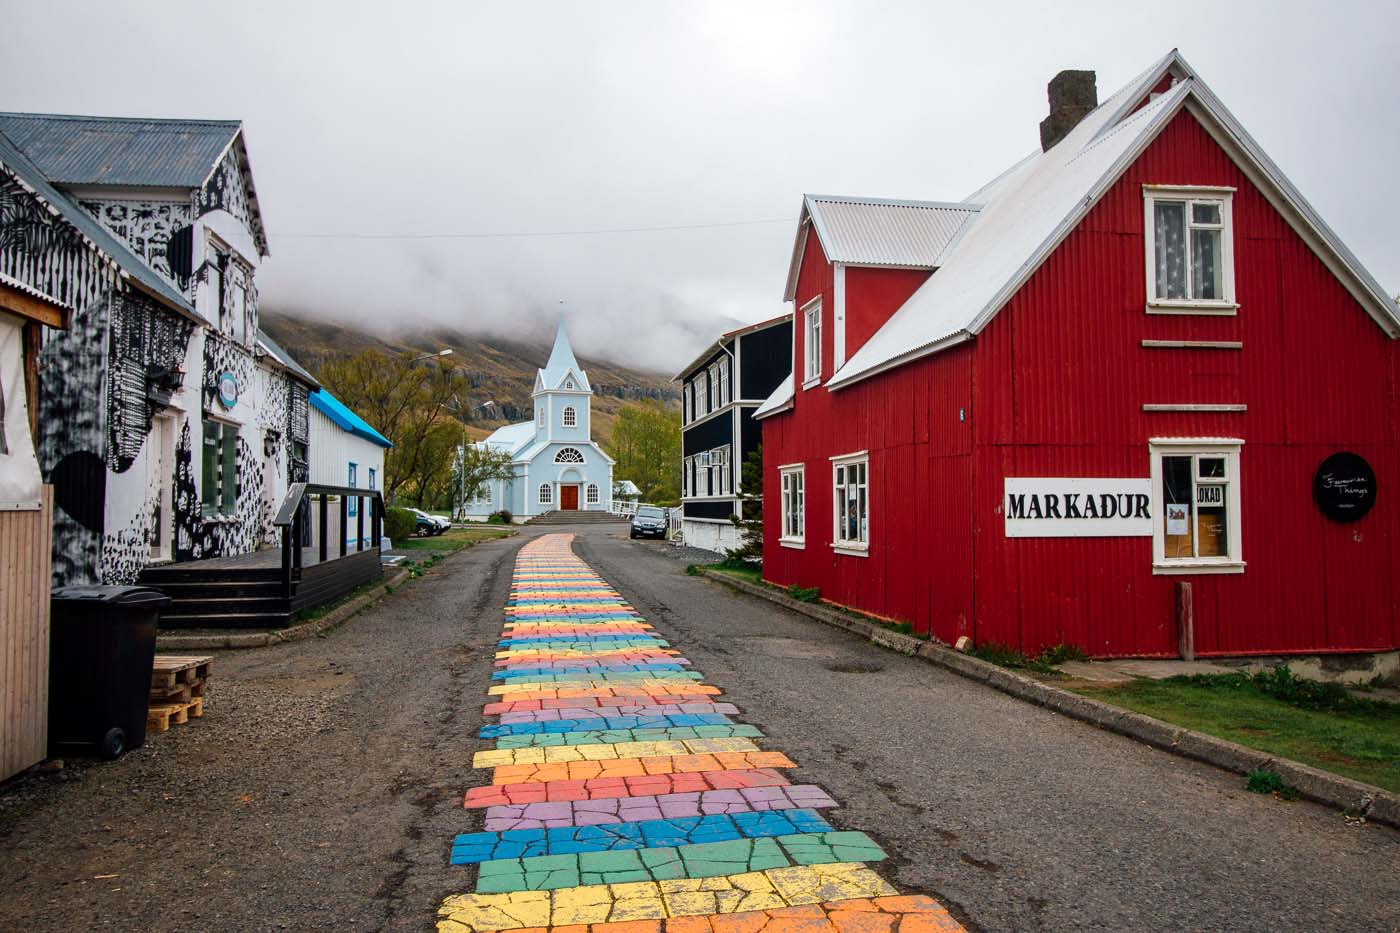 Painted rainbow road leading to a blue church